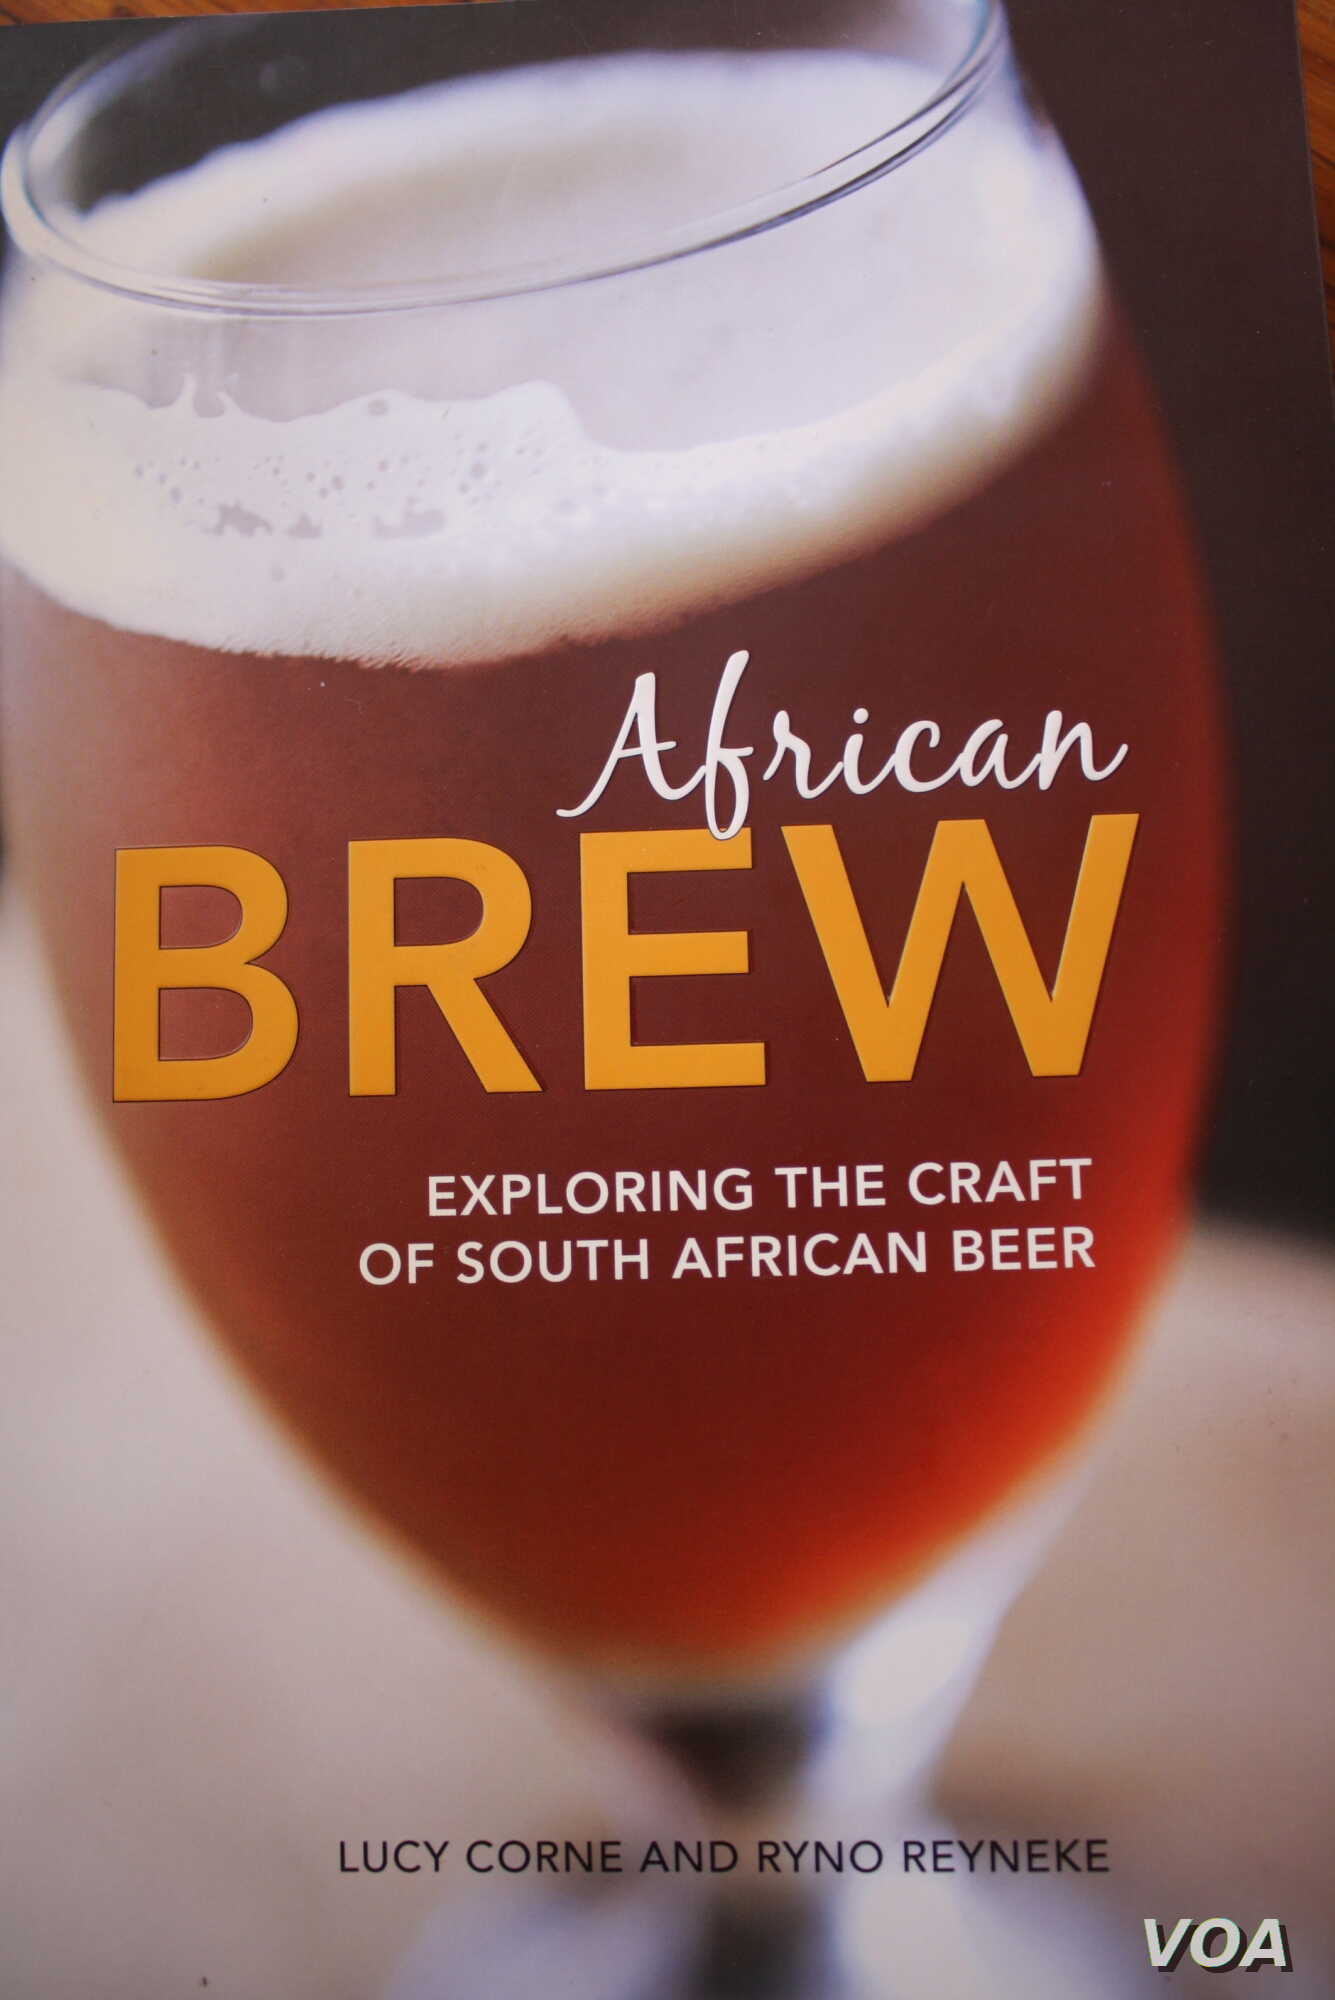 The 'bible' of craft beer in South Africa, African Brew. (